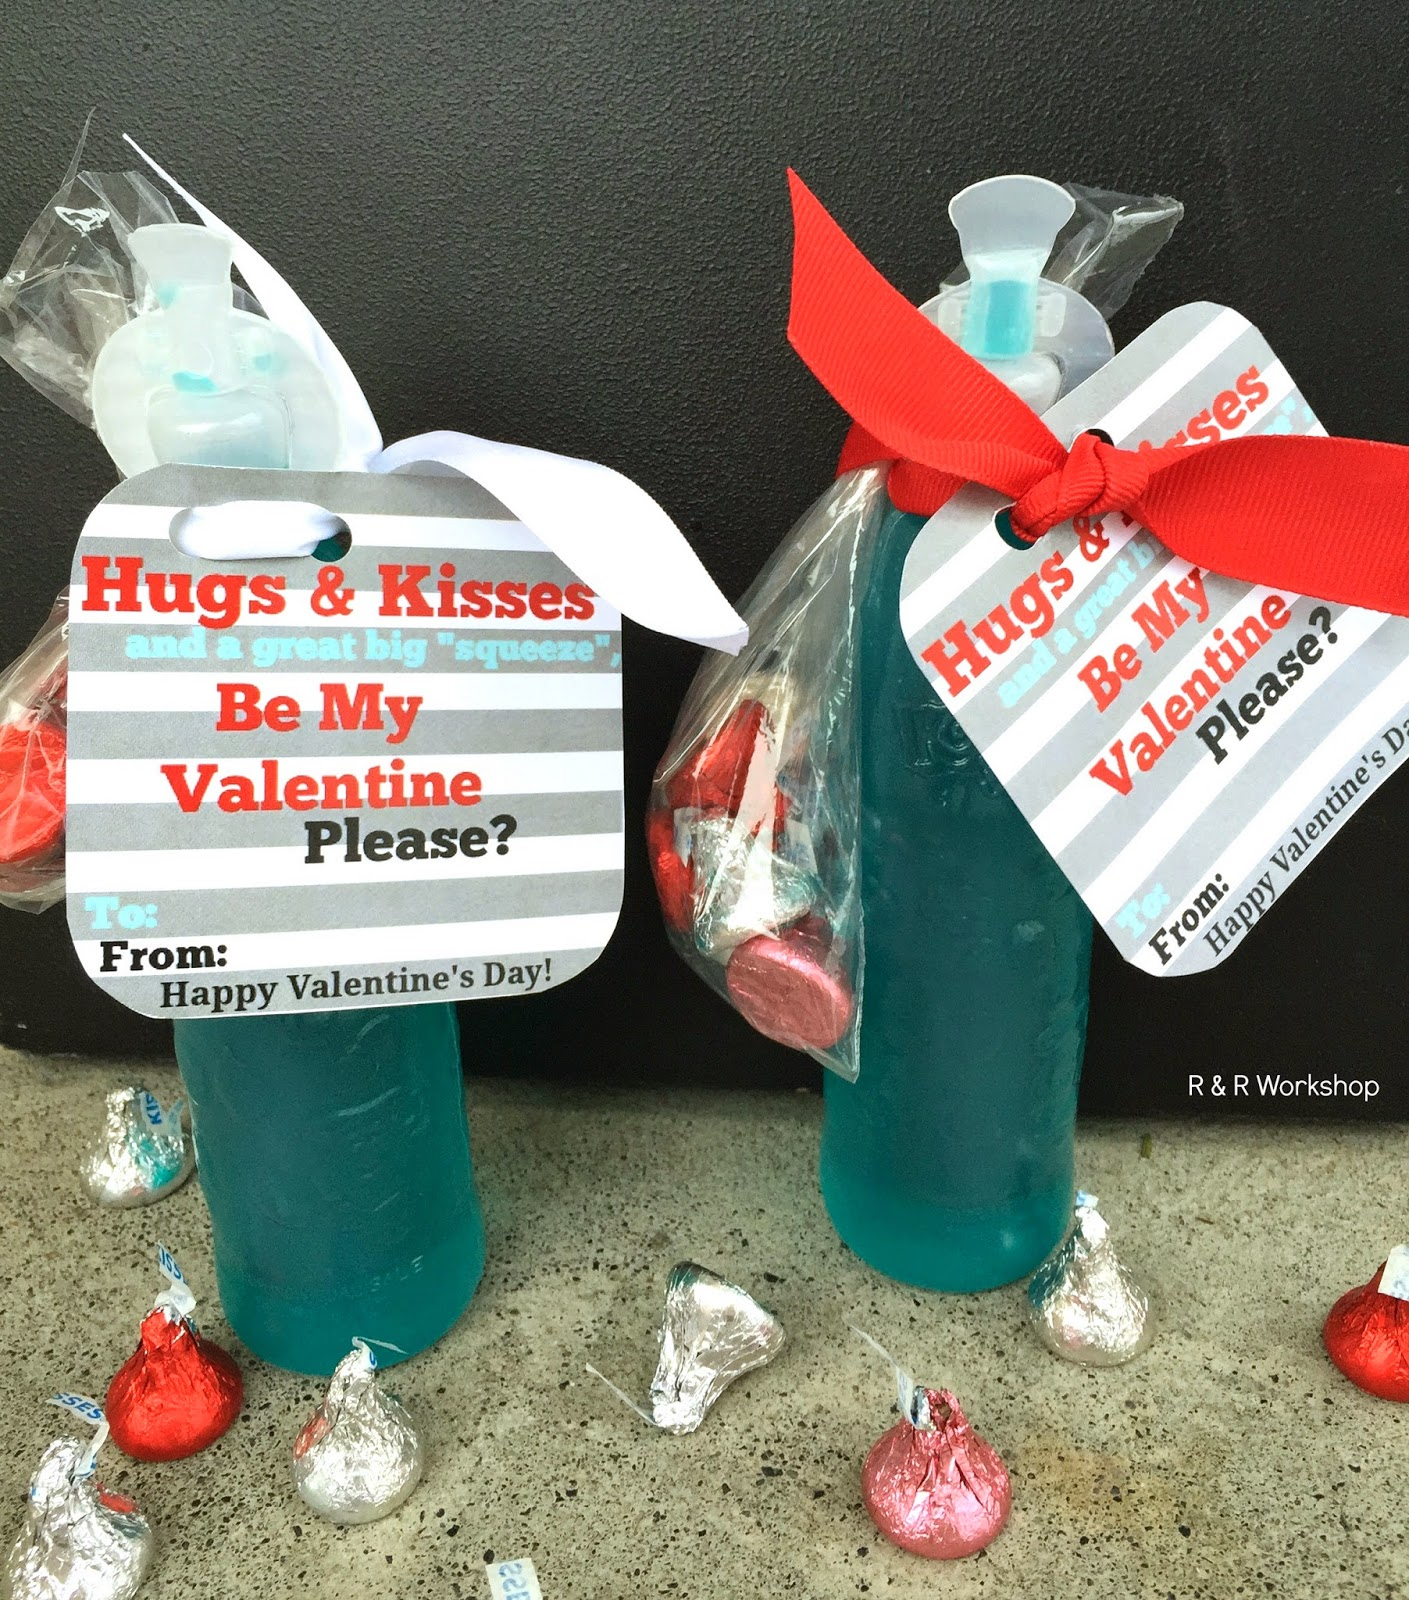 R & R Workshop: Hugs & Kisses Valentine Idea and Printable Gift Tag